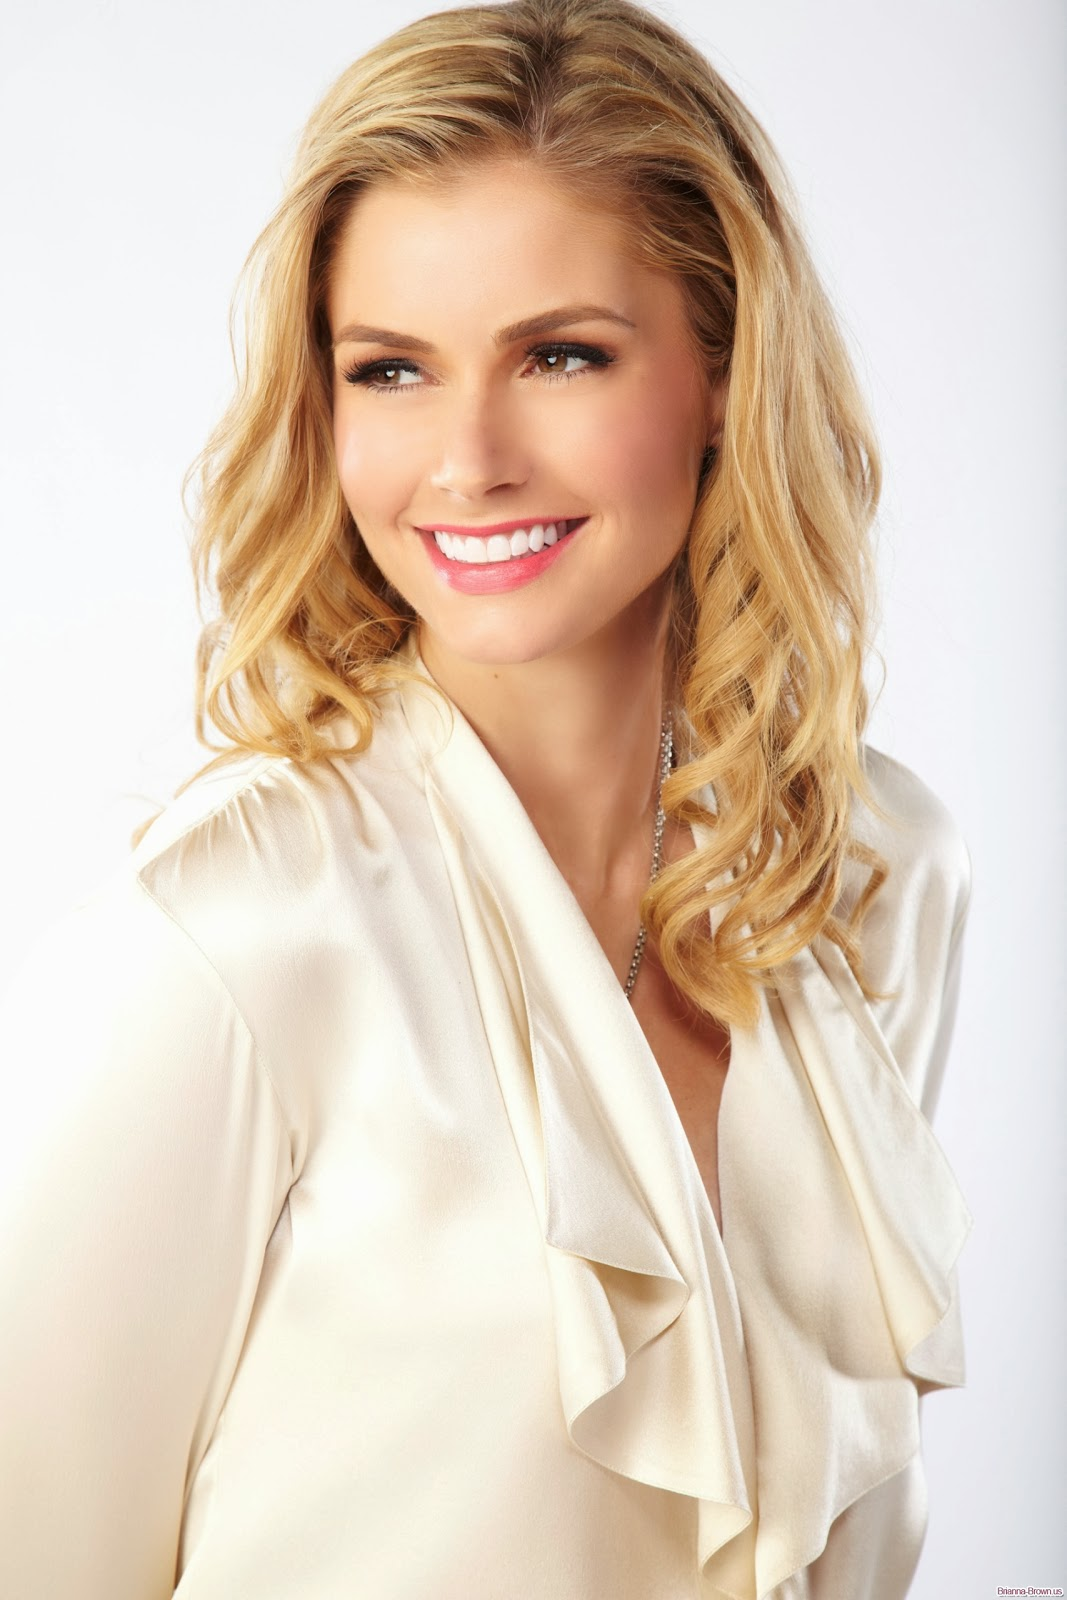 brianna brown smallville